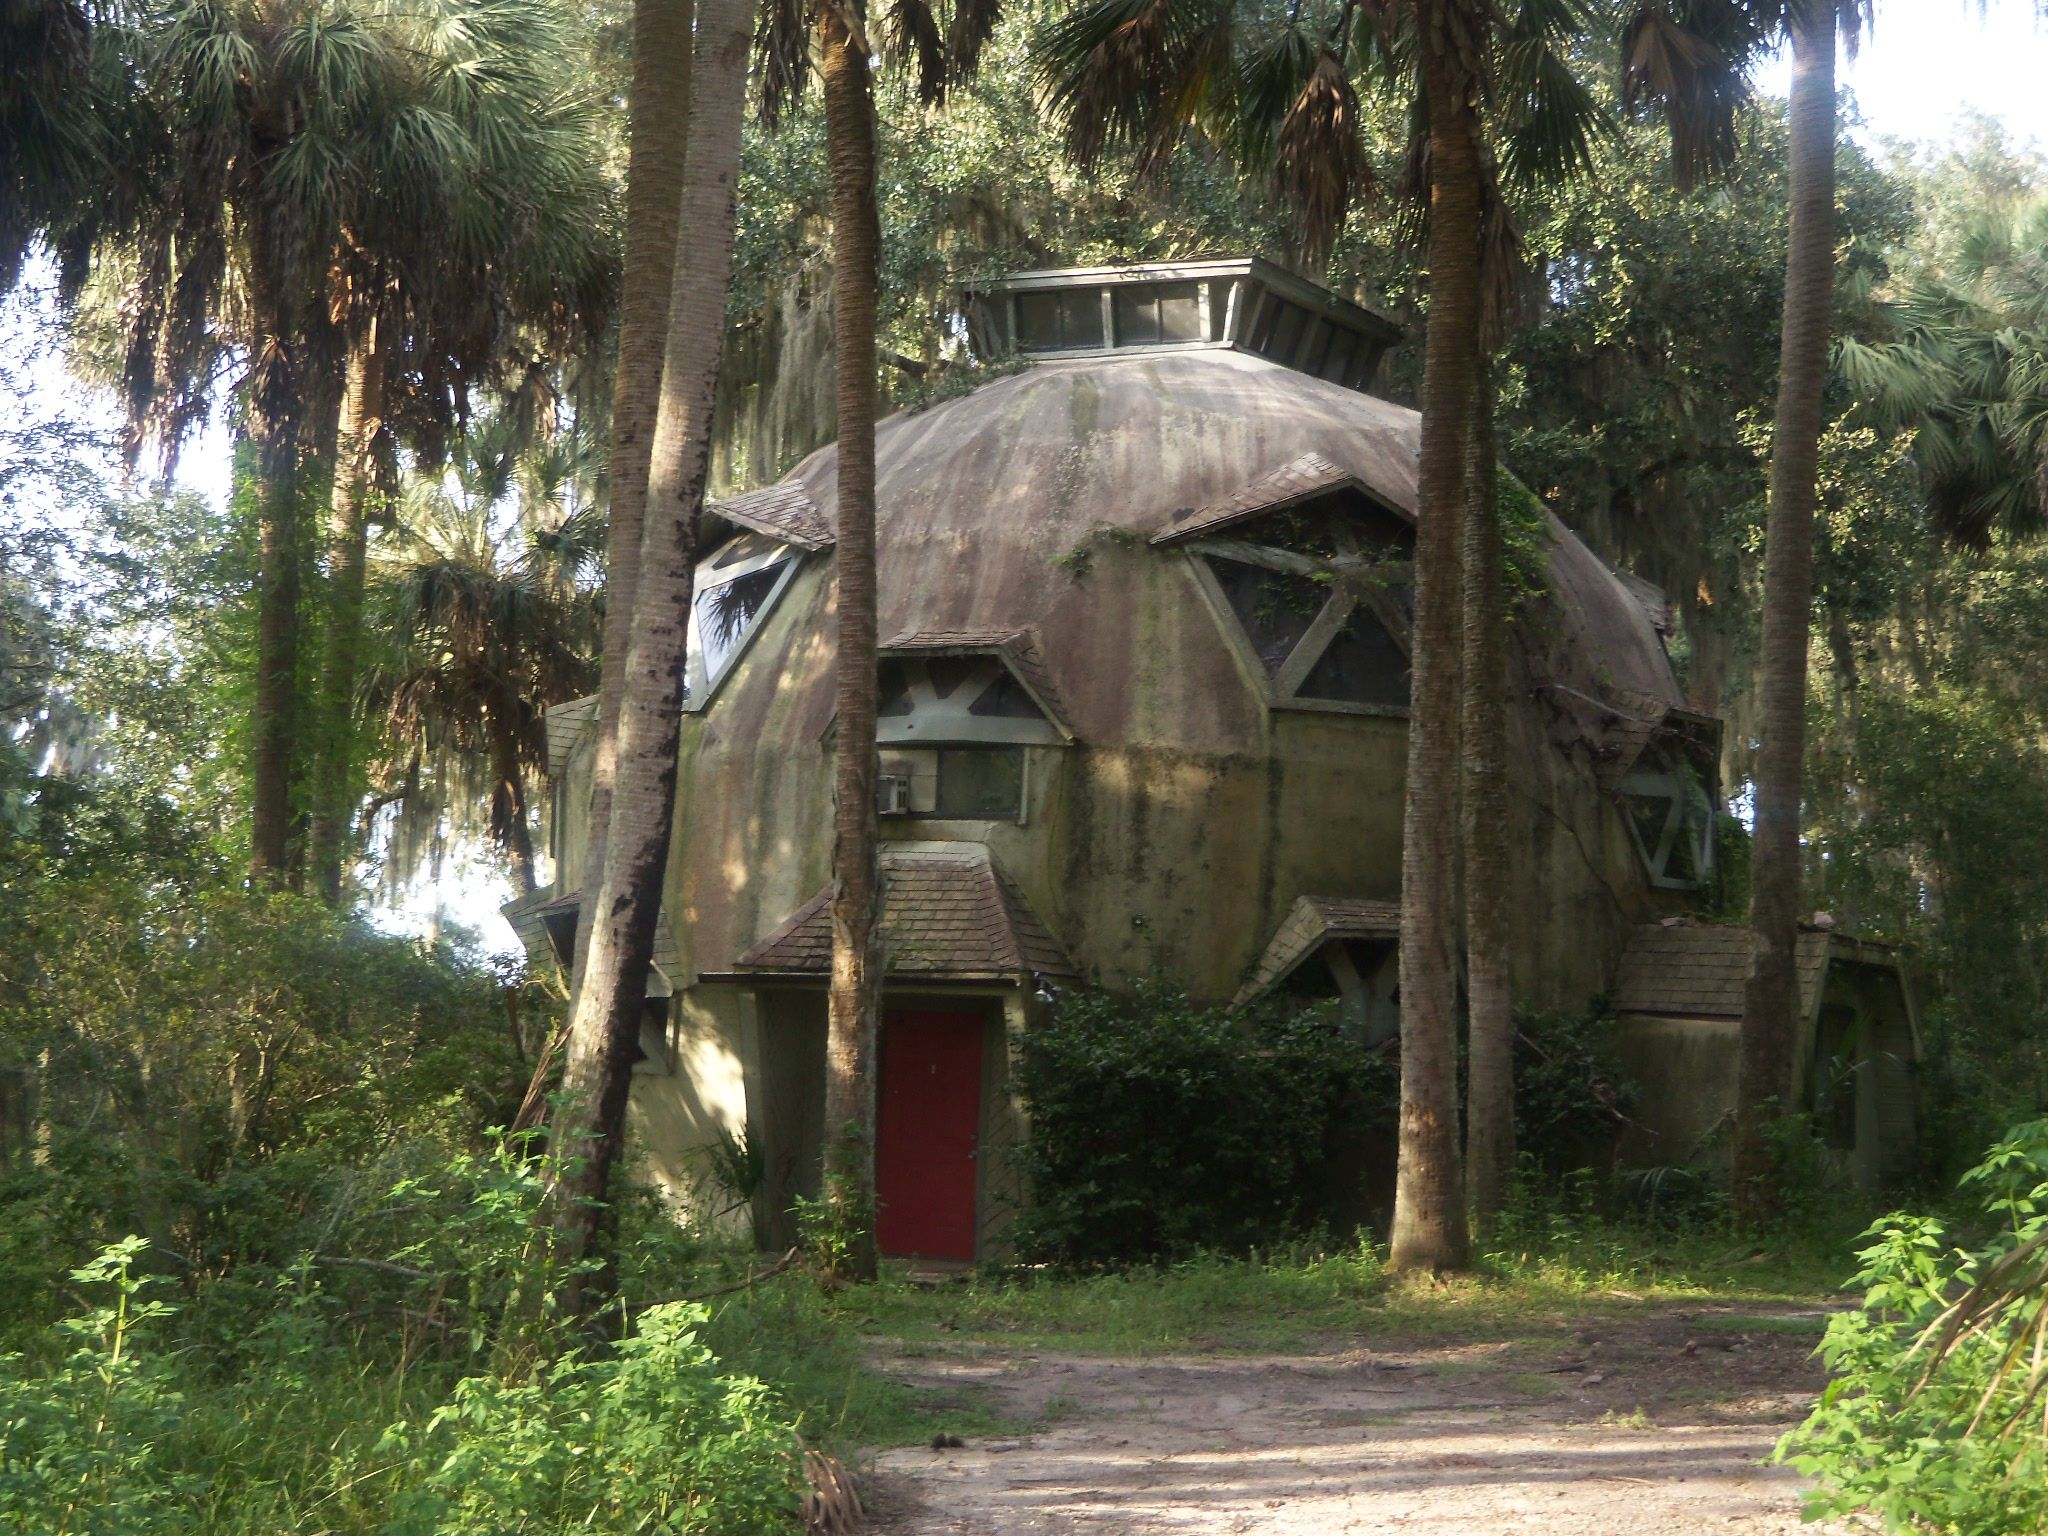 Dome House For Sale Near Gainesville Fl Off The Grid On The